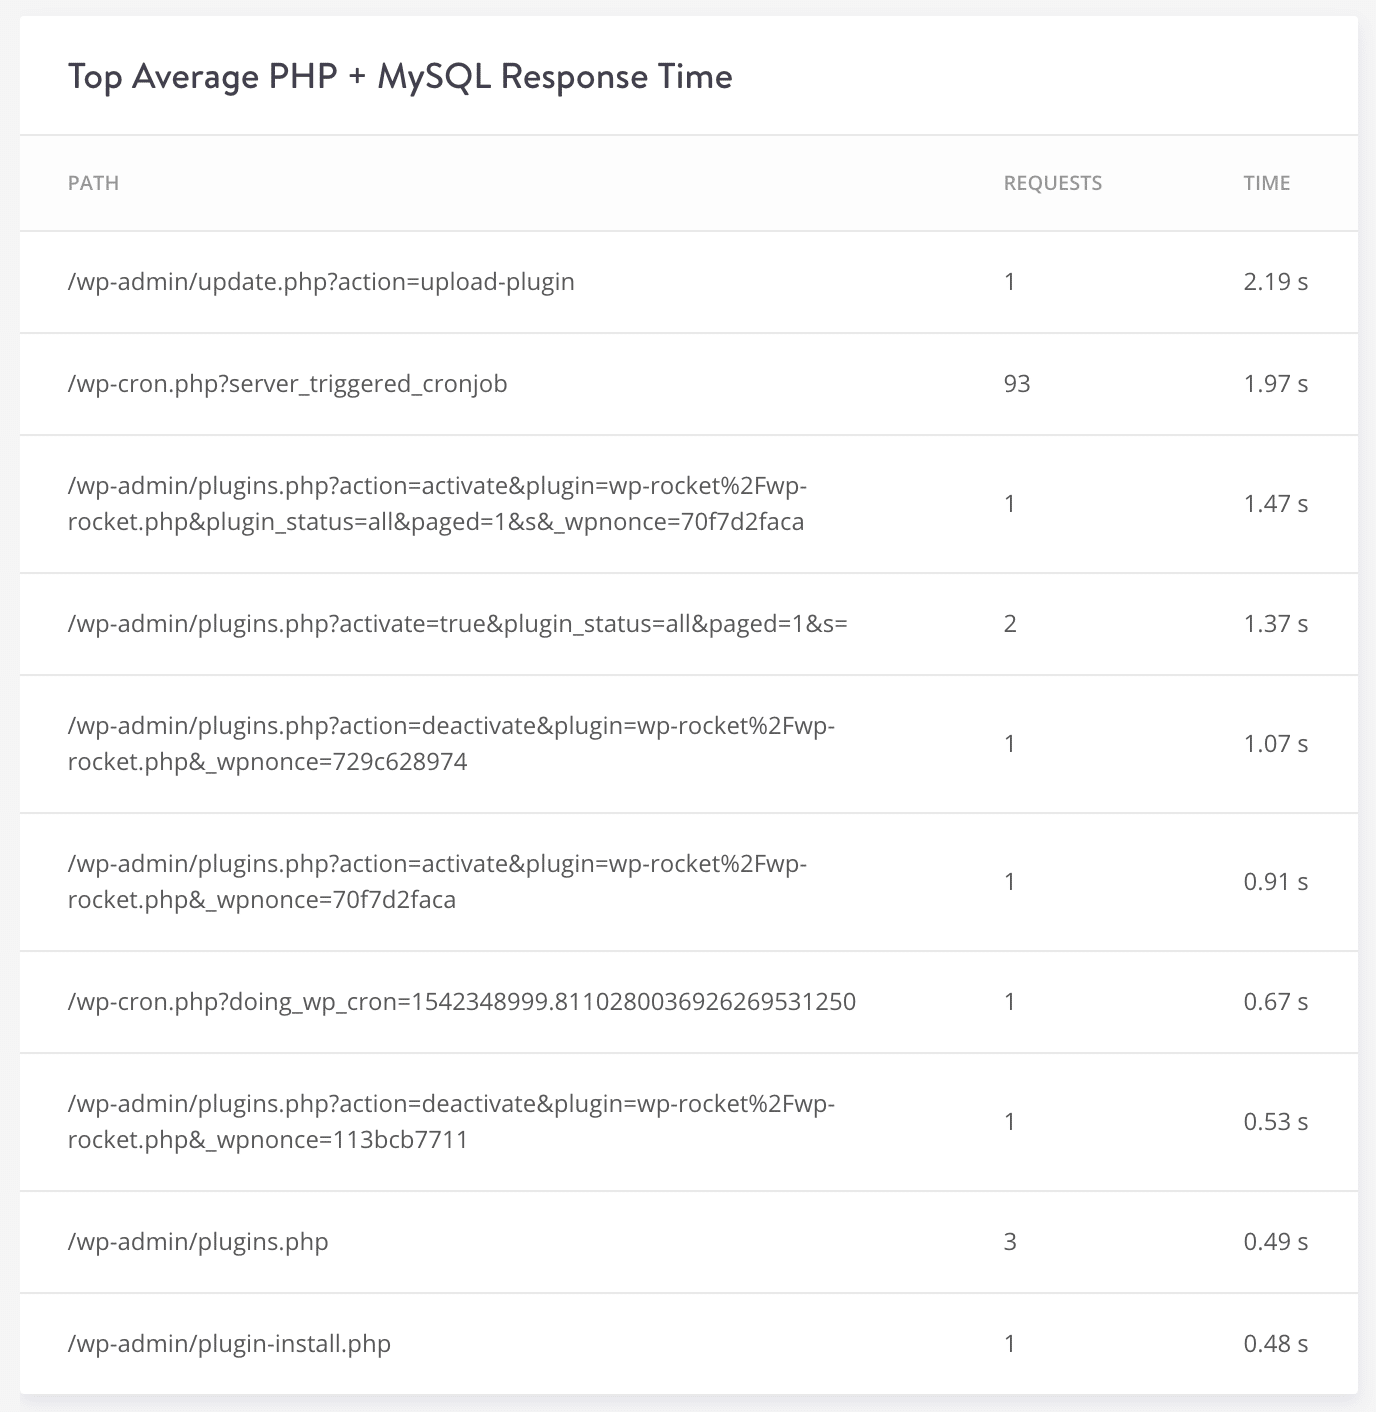 Top Average PHP + MySQL Response Time